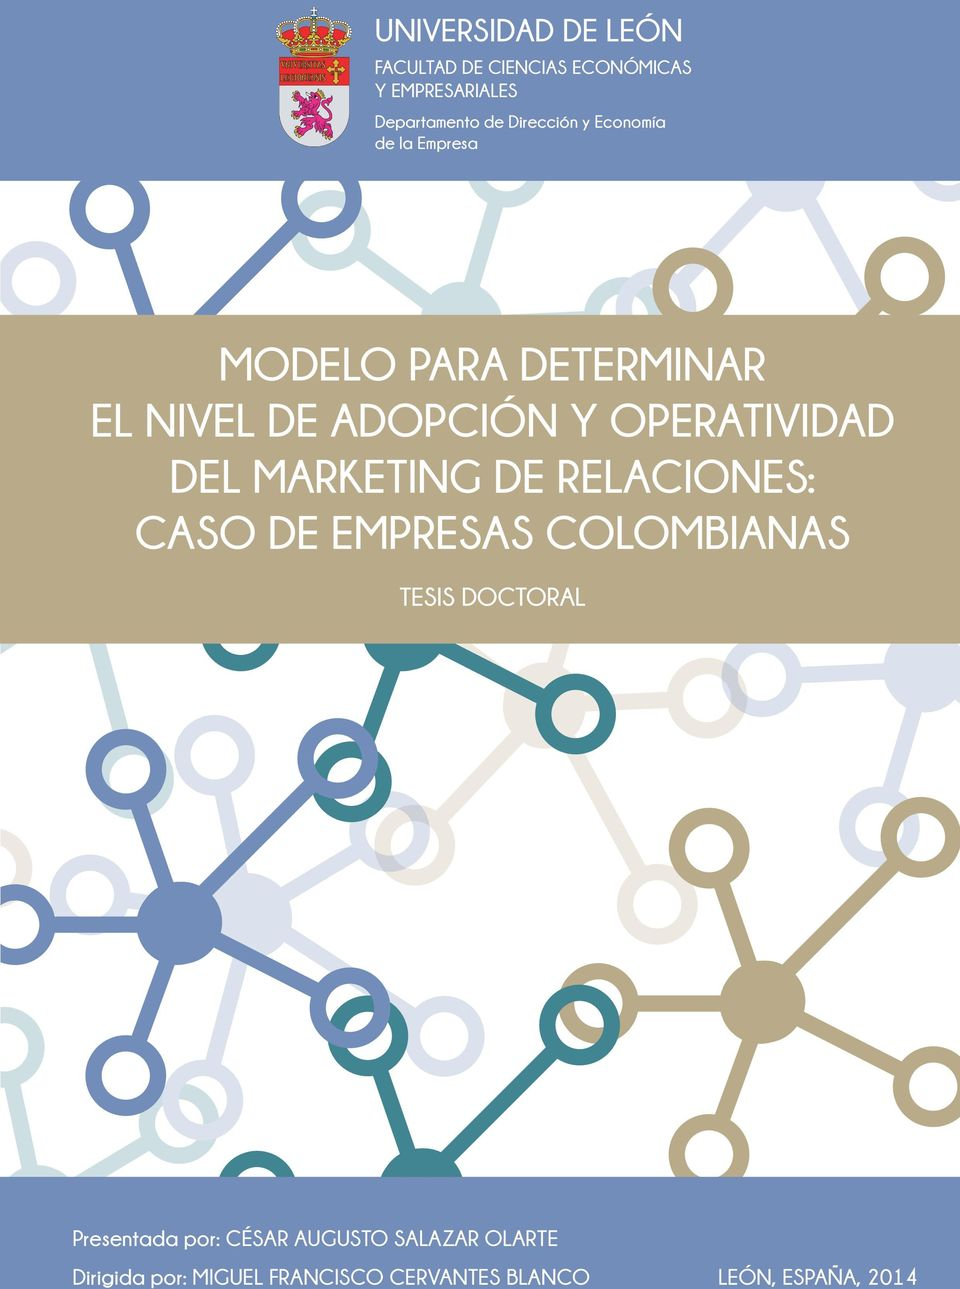 OPERATIVIDAD DEL MARKETING DE RELACIONES: CASO DE EMPRESAS COLOMBIANAS TESIS DOCTORAL